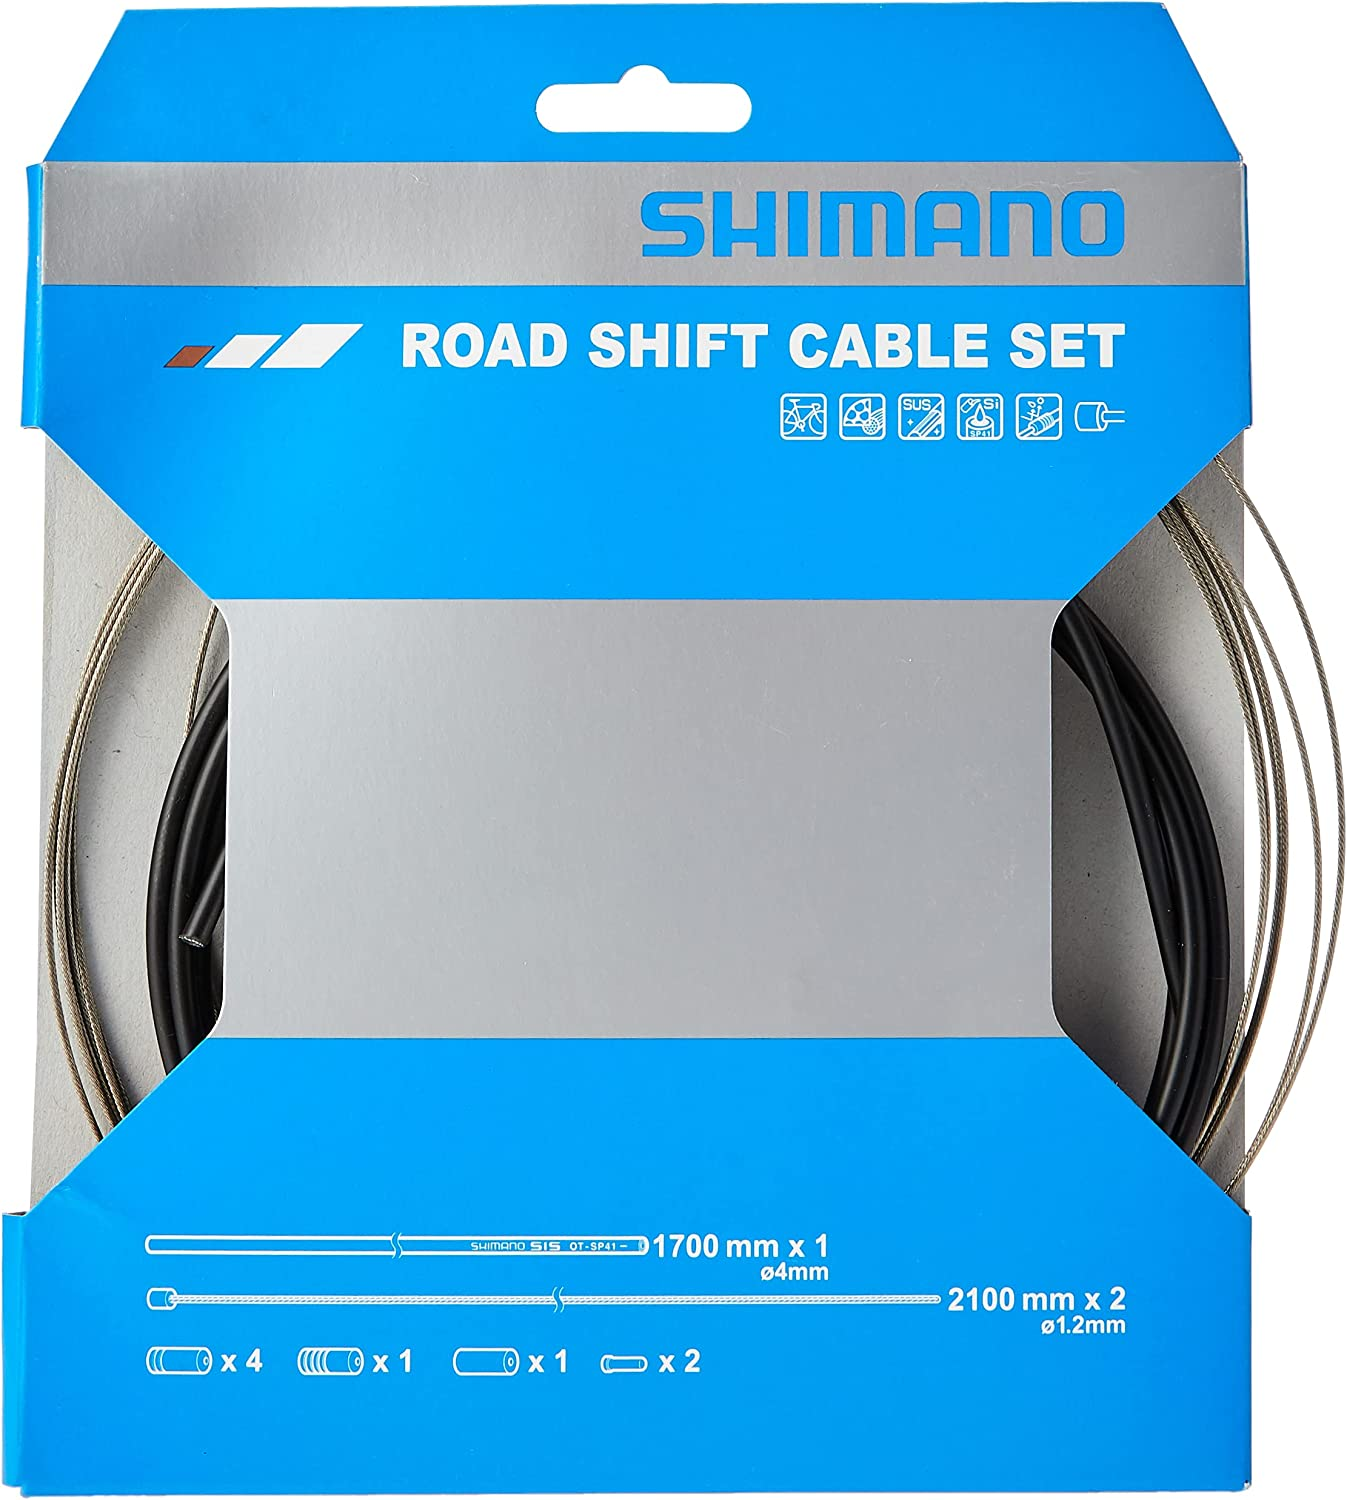 SHIMANO Road Acer Cable Max 54% OFF Sleeve and 2016 Black Cheap super special price